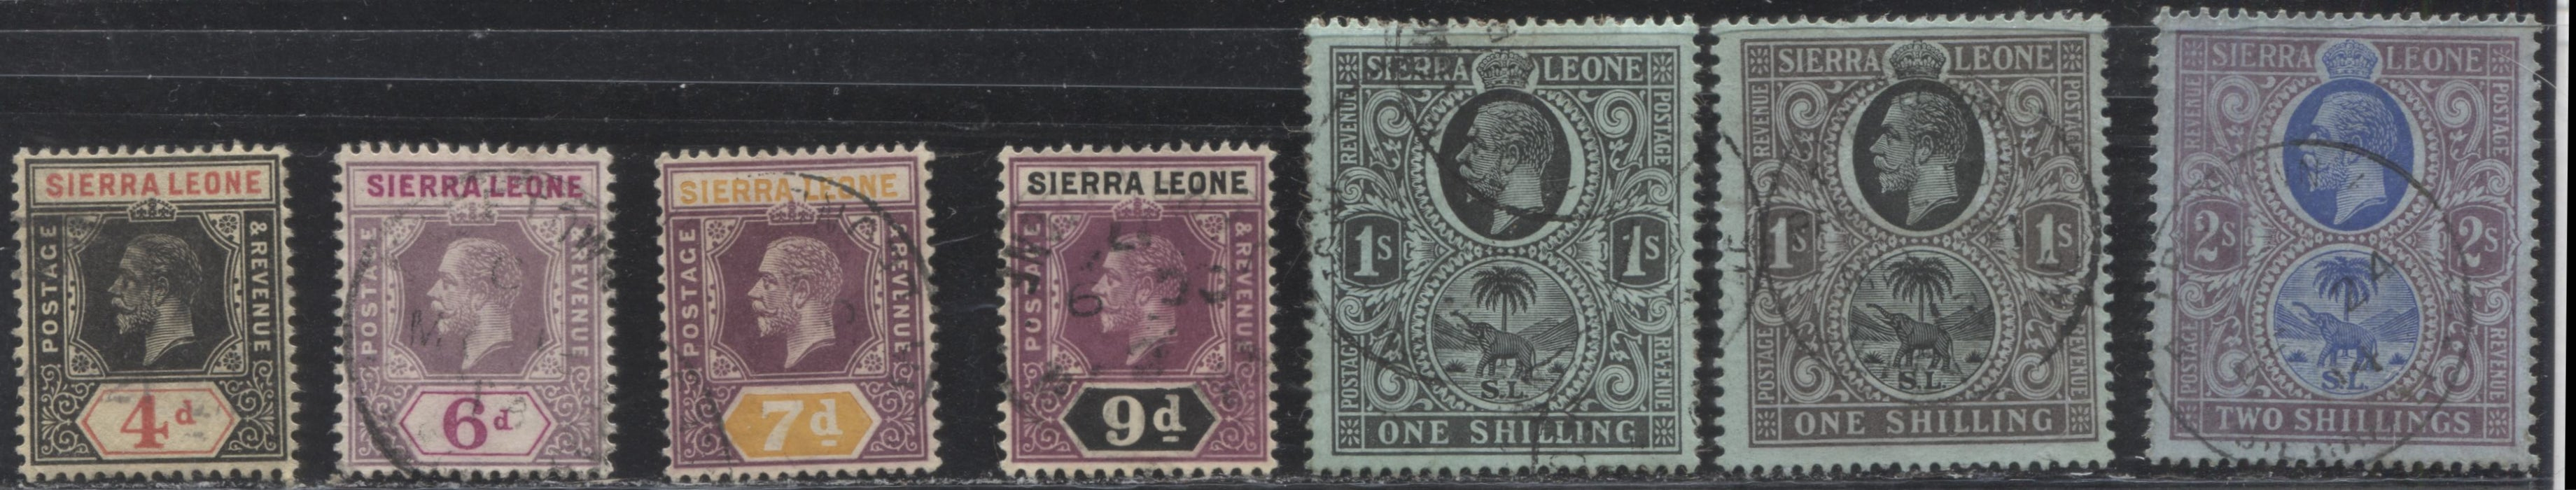 Sierra Leone #109/116 (SG#117/125) 4d Black and Red on Yellow - 2/- Blue and Purple on Blue, King George V, 1912-1921 First Imperium Keyplate Issue, Watermarked Multiple Crown CA, 7 Mostly VF Used Stamps